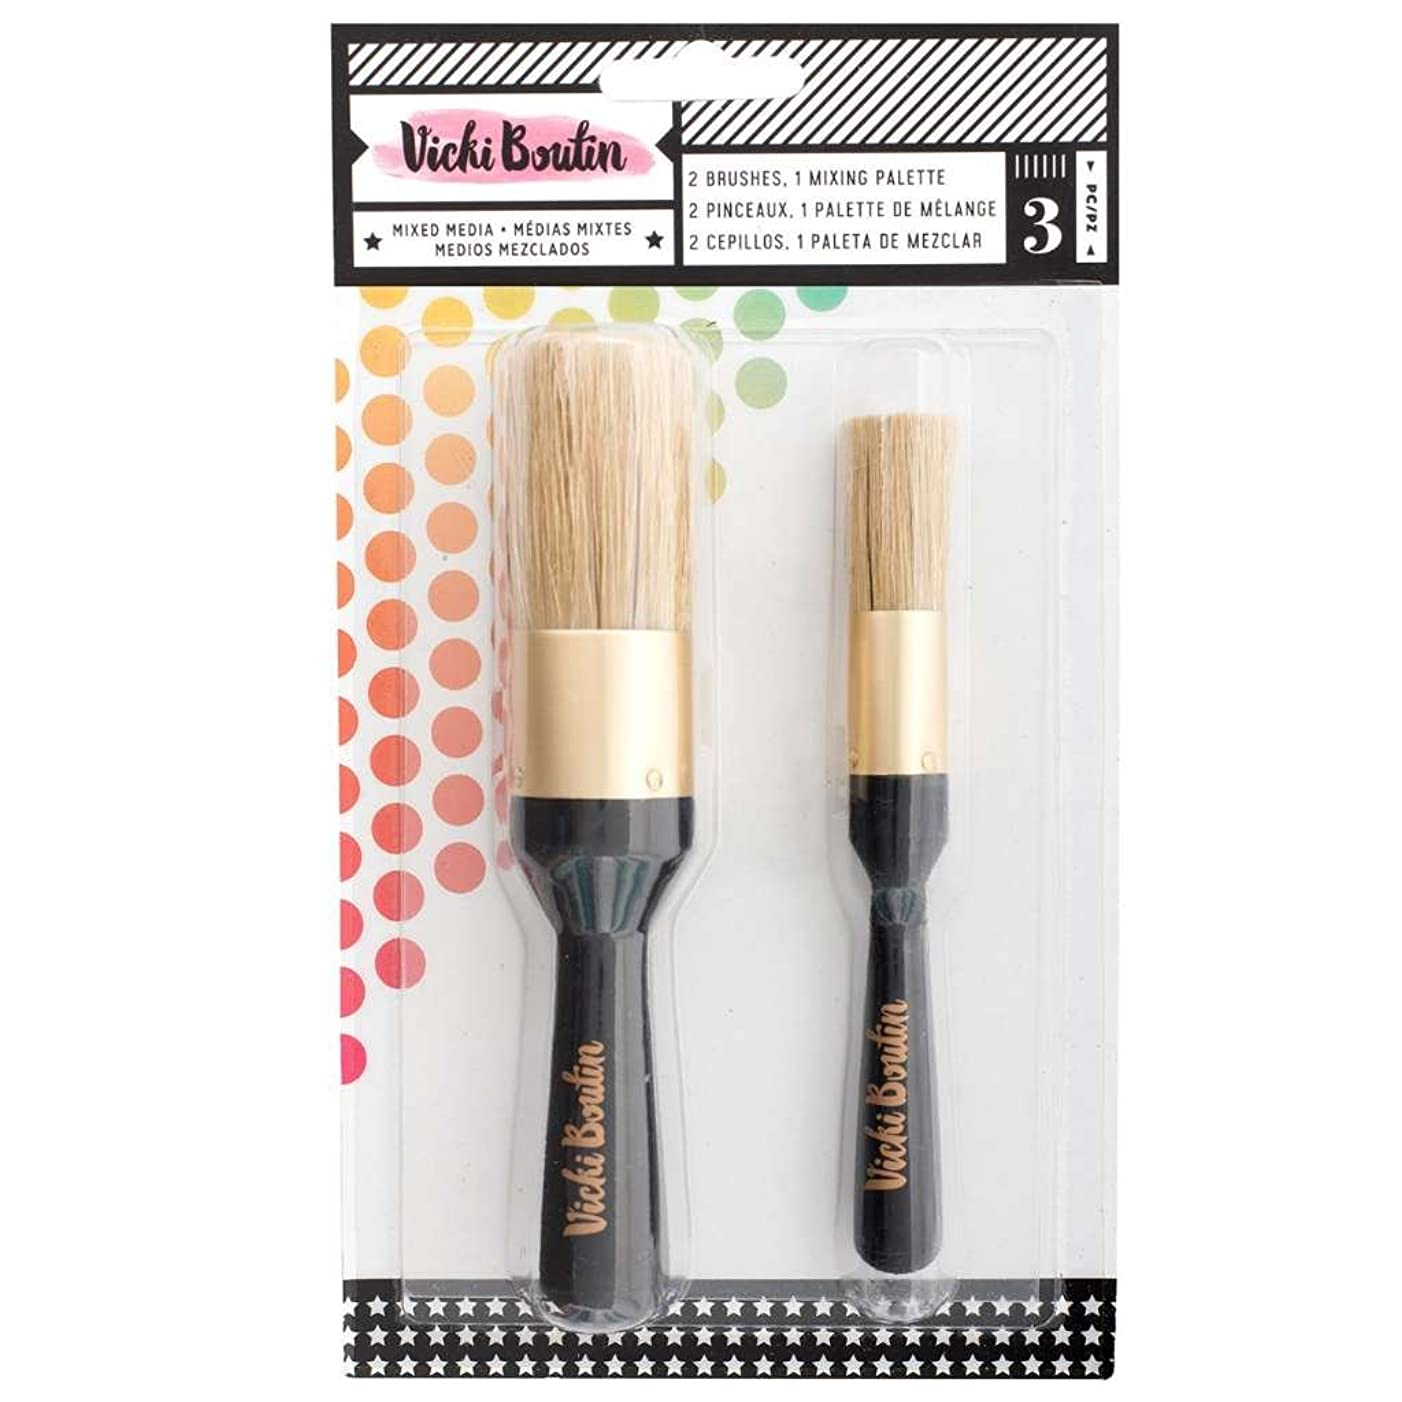 American Crafts Vicki Boutin Mixed Media Stencil Brush Set - All the Good Things Collection - Painting and Scrapbooking Supplies - Pack of 3